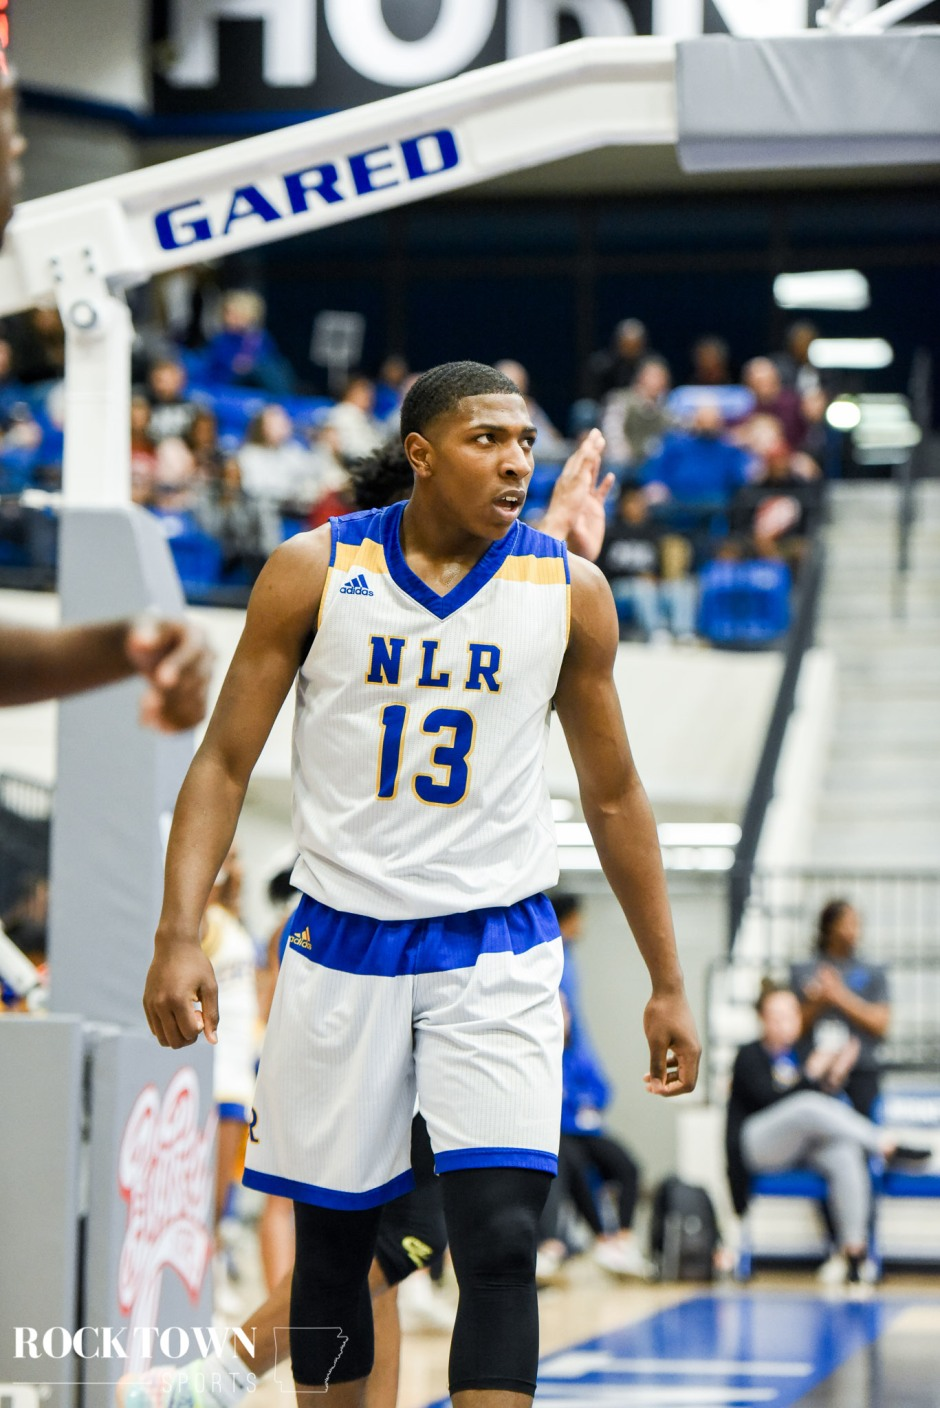 NLR_conway_bball_2020(i)-81